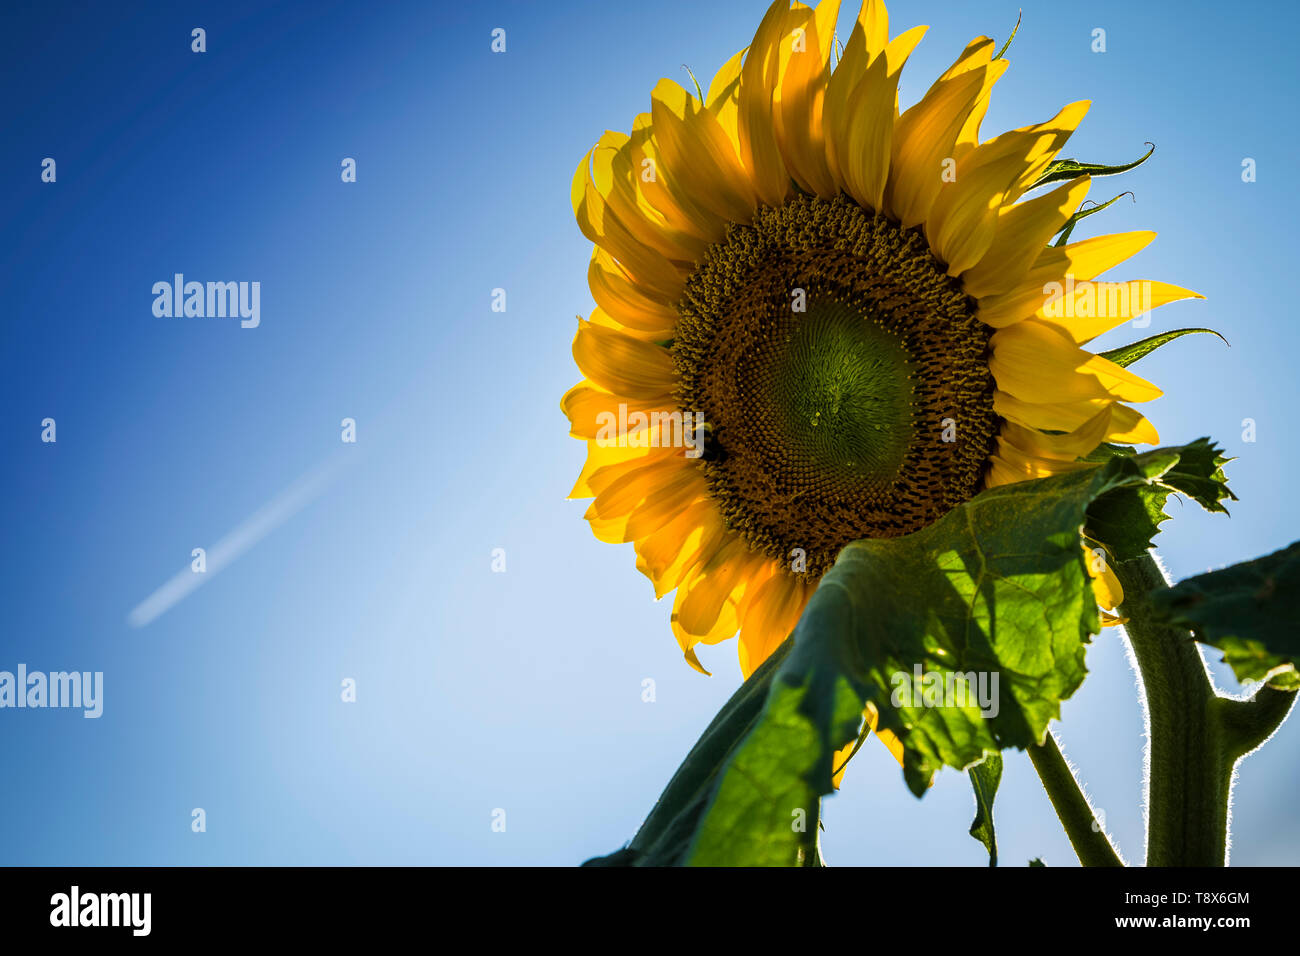 Sunflower with bees an blue sky Stock Photo